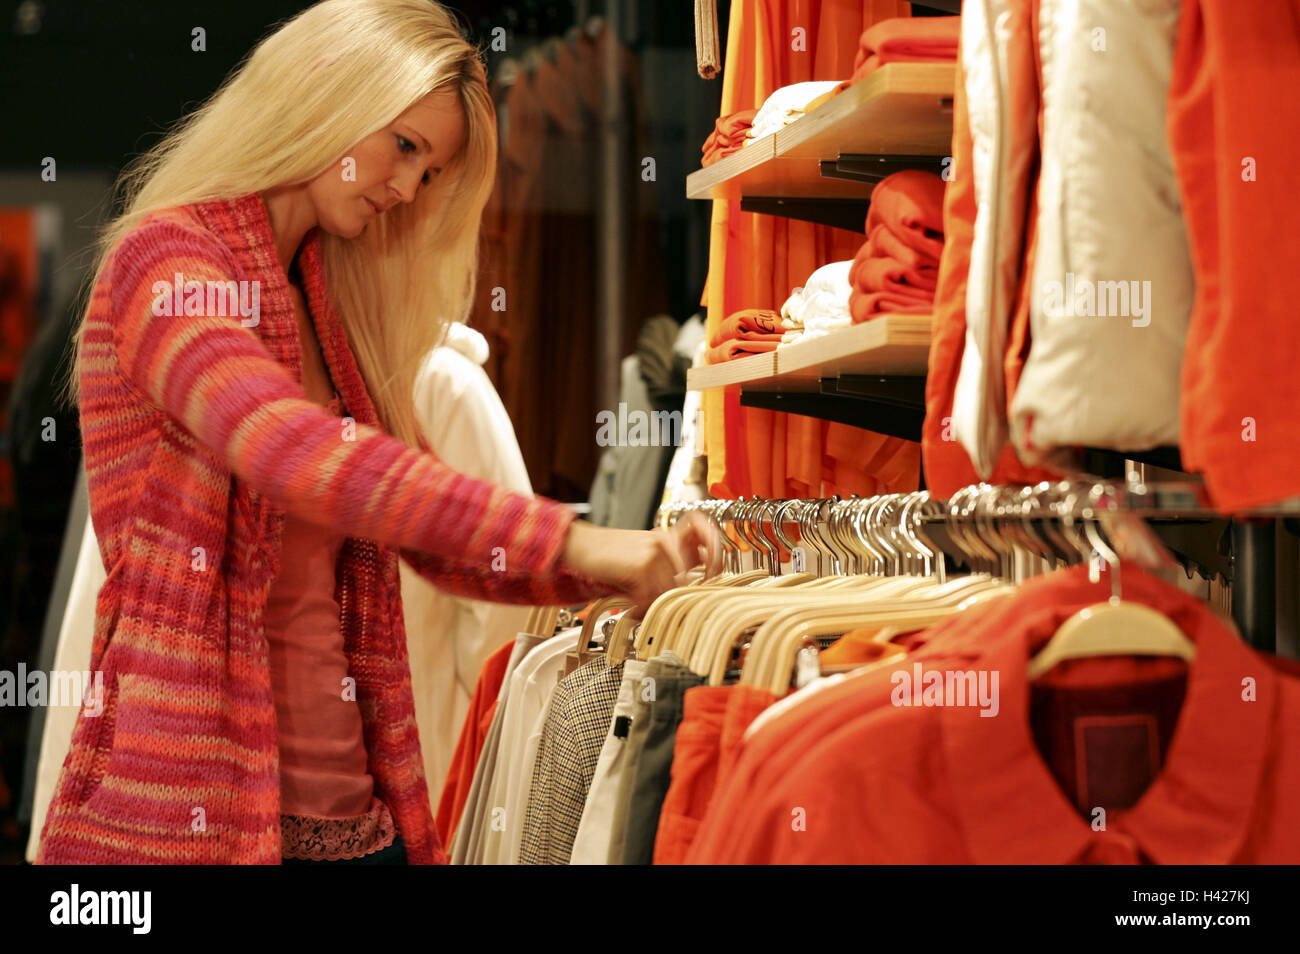 Woman, boutique, clothing, Shopping,  Selection, search,  Lifestyle, consumption, business, stores, shopping, purchase, - Stock Image